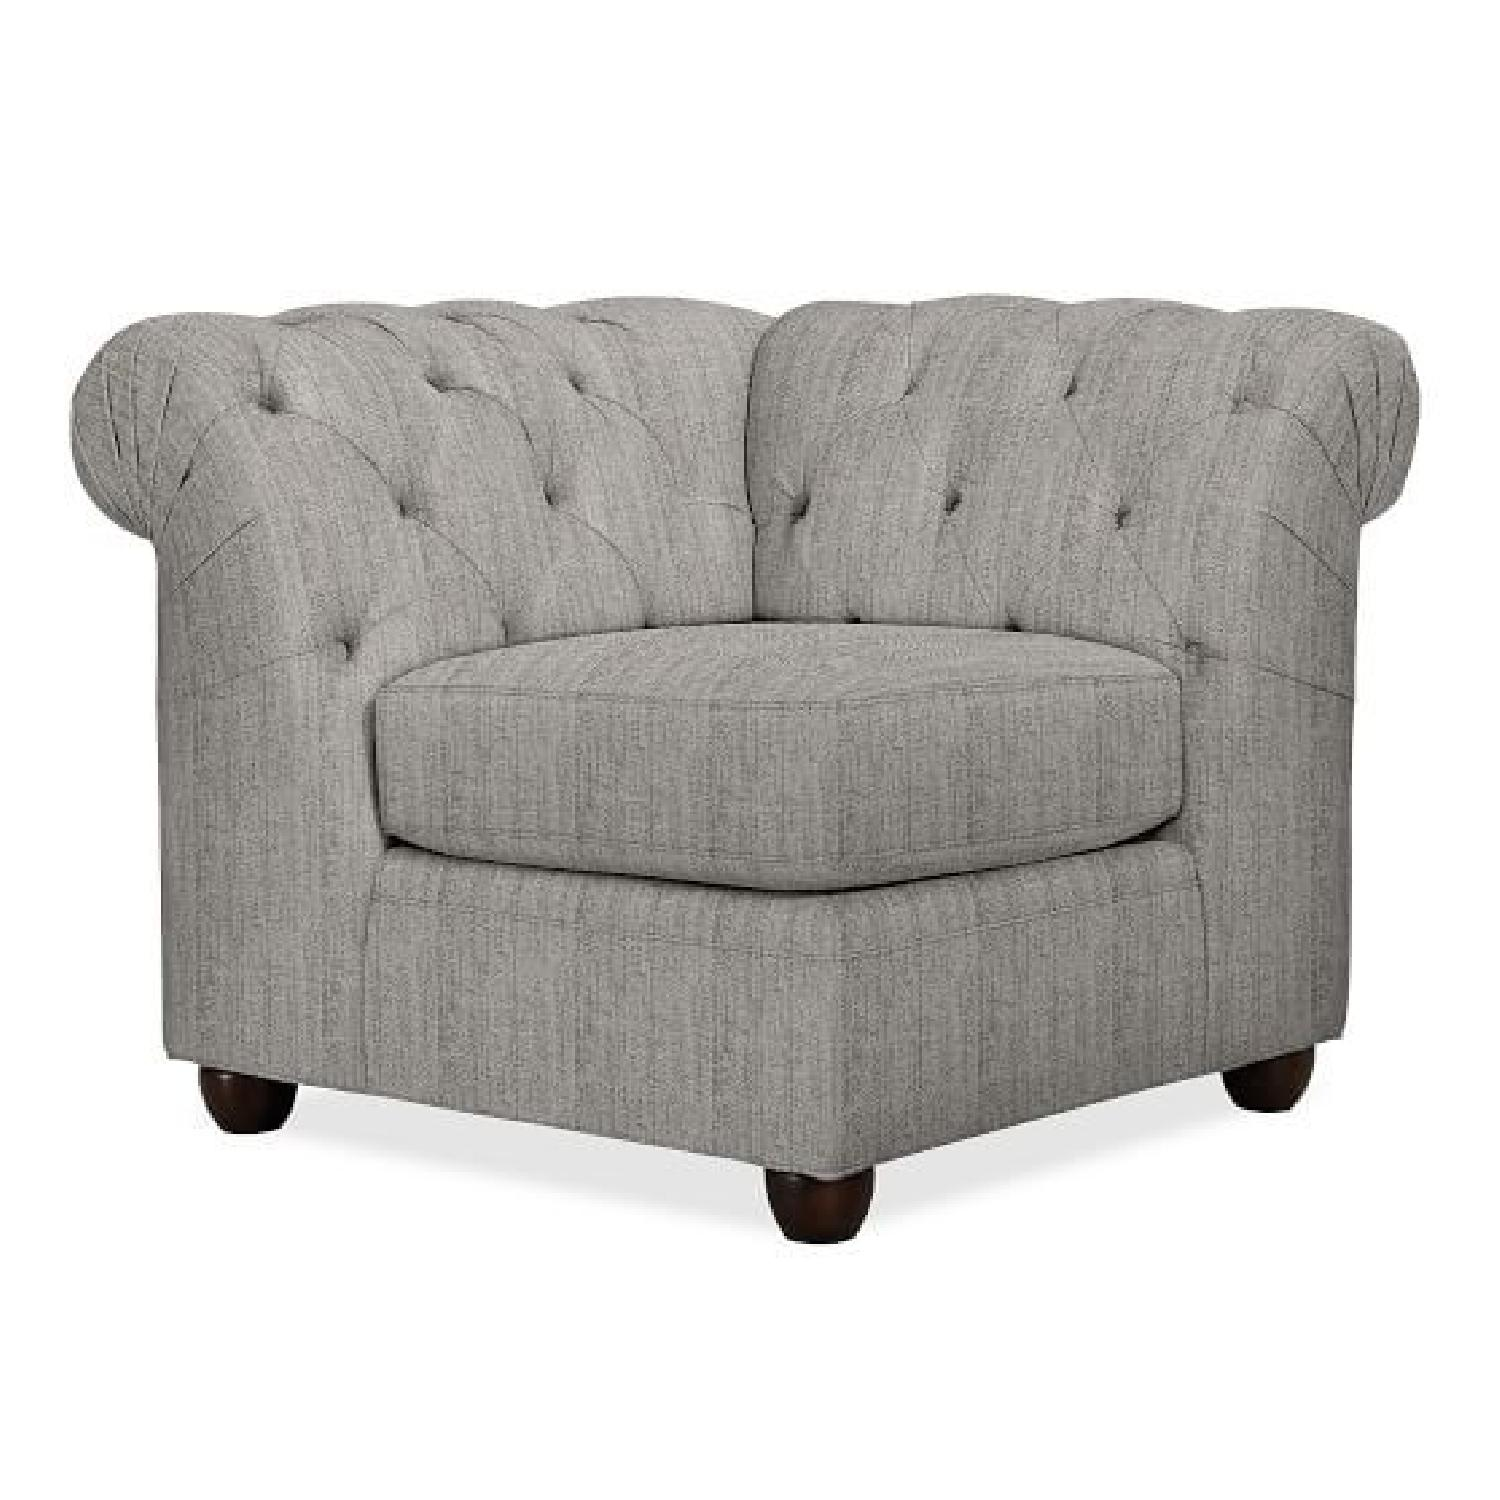 Pottery Barn Chesterfield Tufted Upholstered Corner Chair